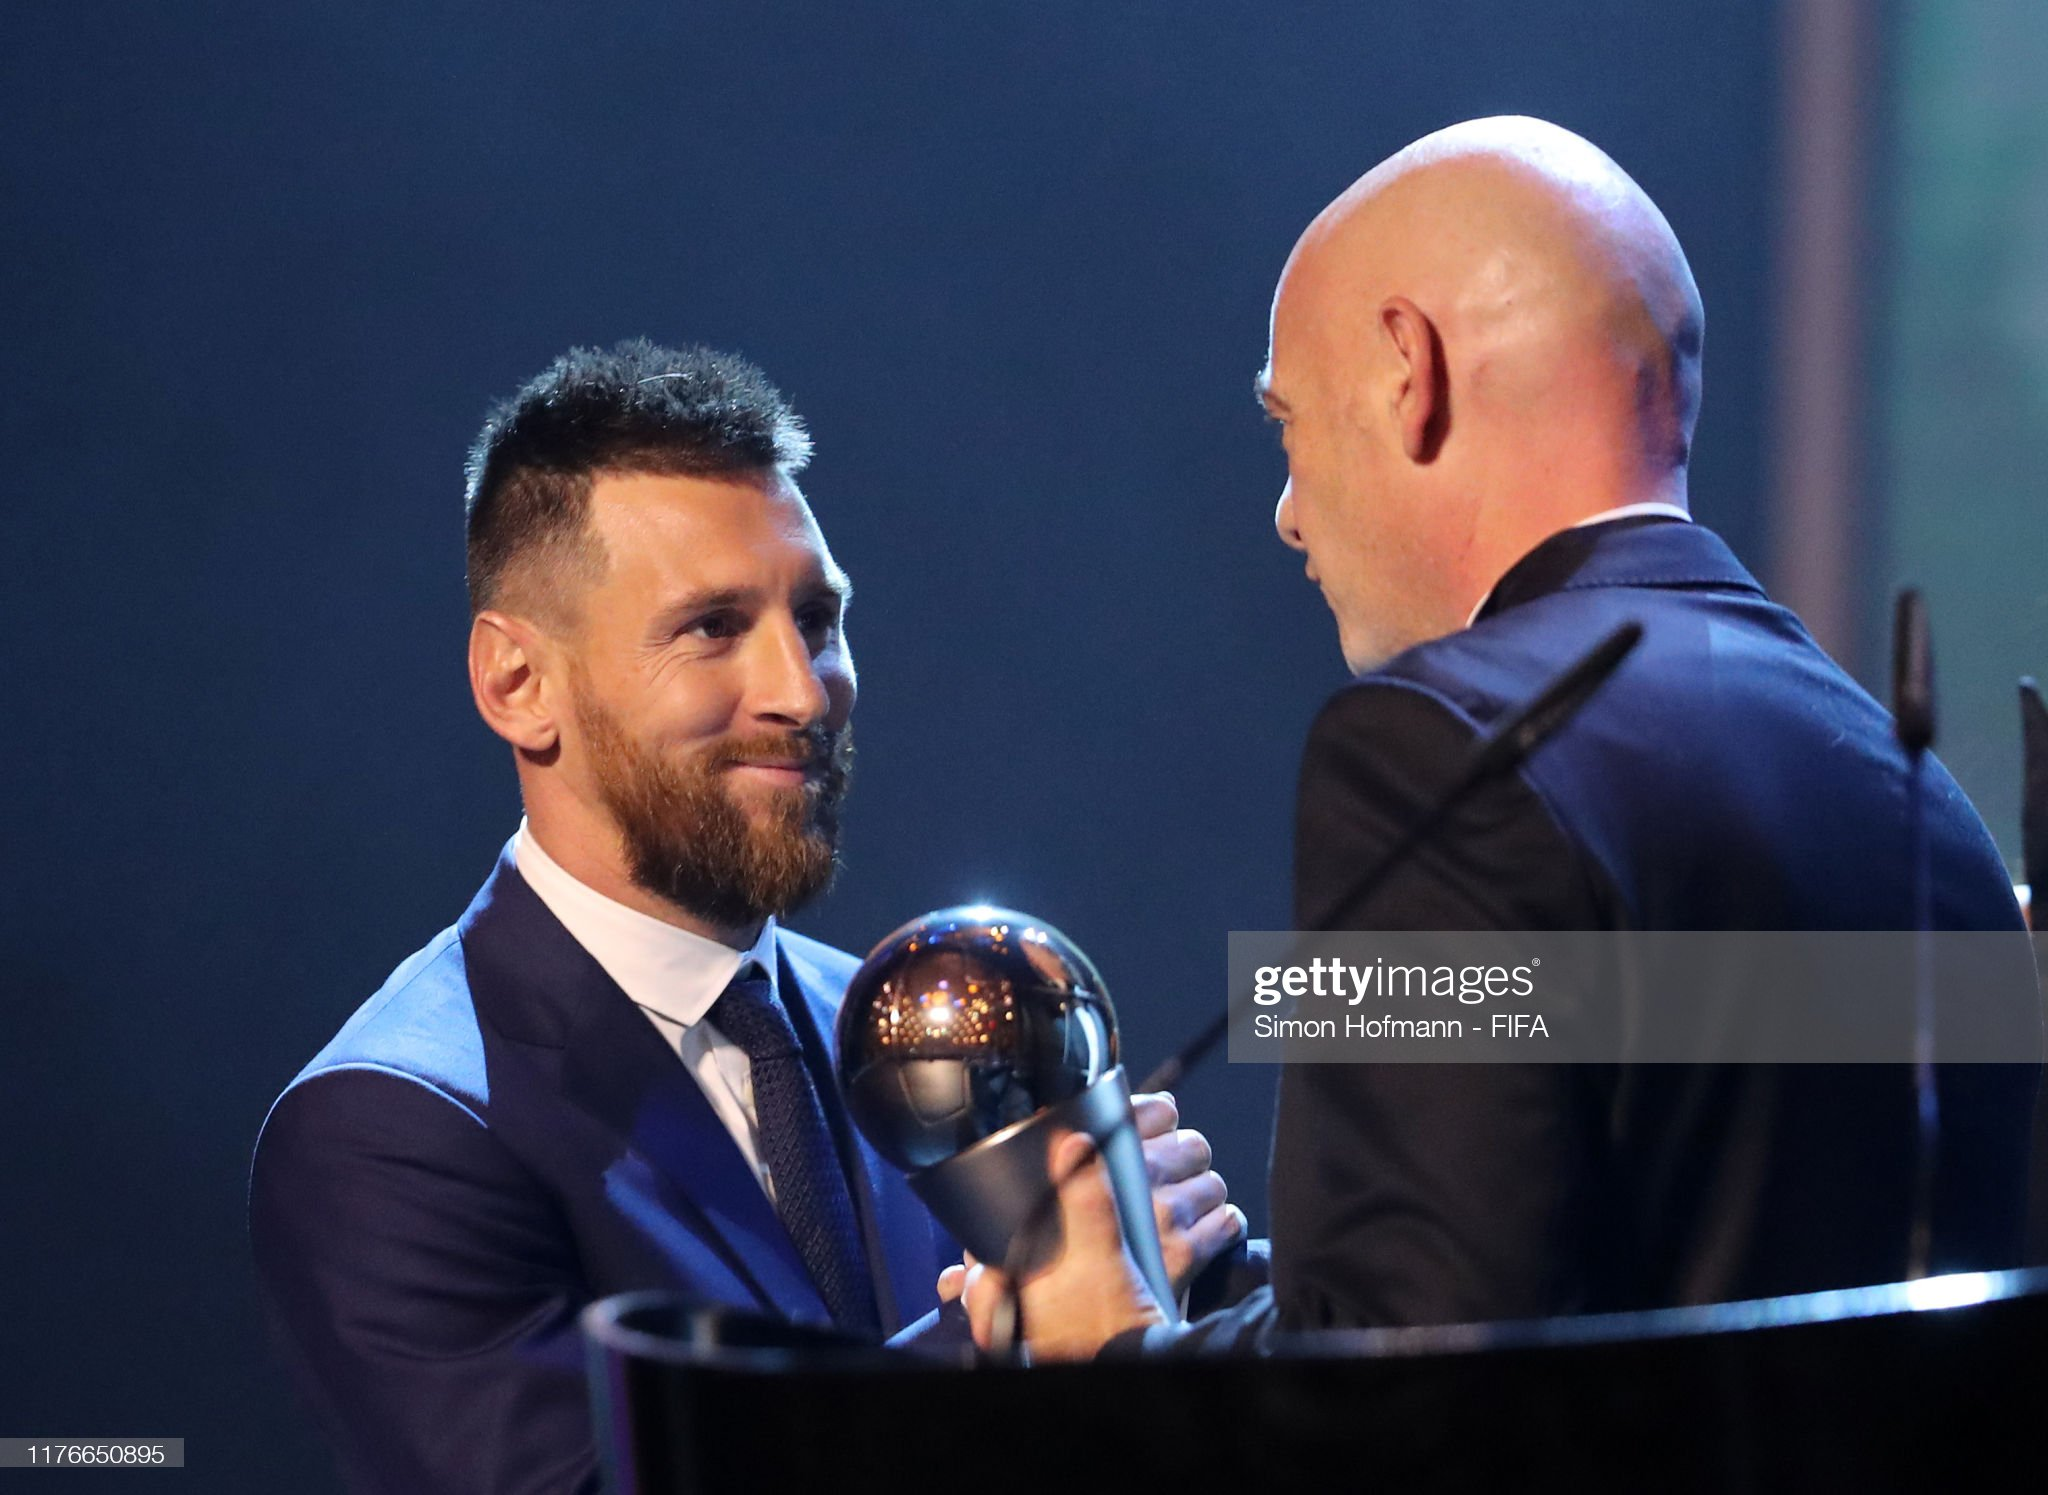 The Best FIFA Football Awards 2019 Lionel-messi-of-fc-barcelona-and-argentina-receives-the-the-best-fifa-picture-id1176650895?s=2048x2048